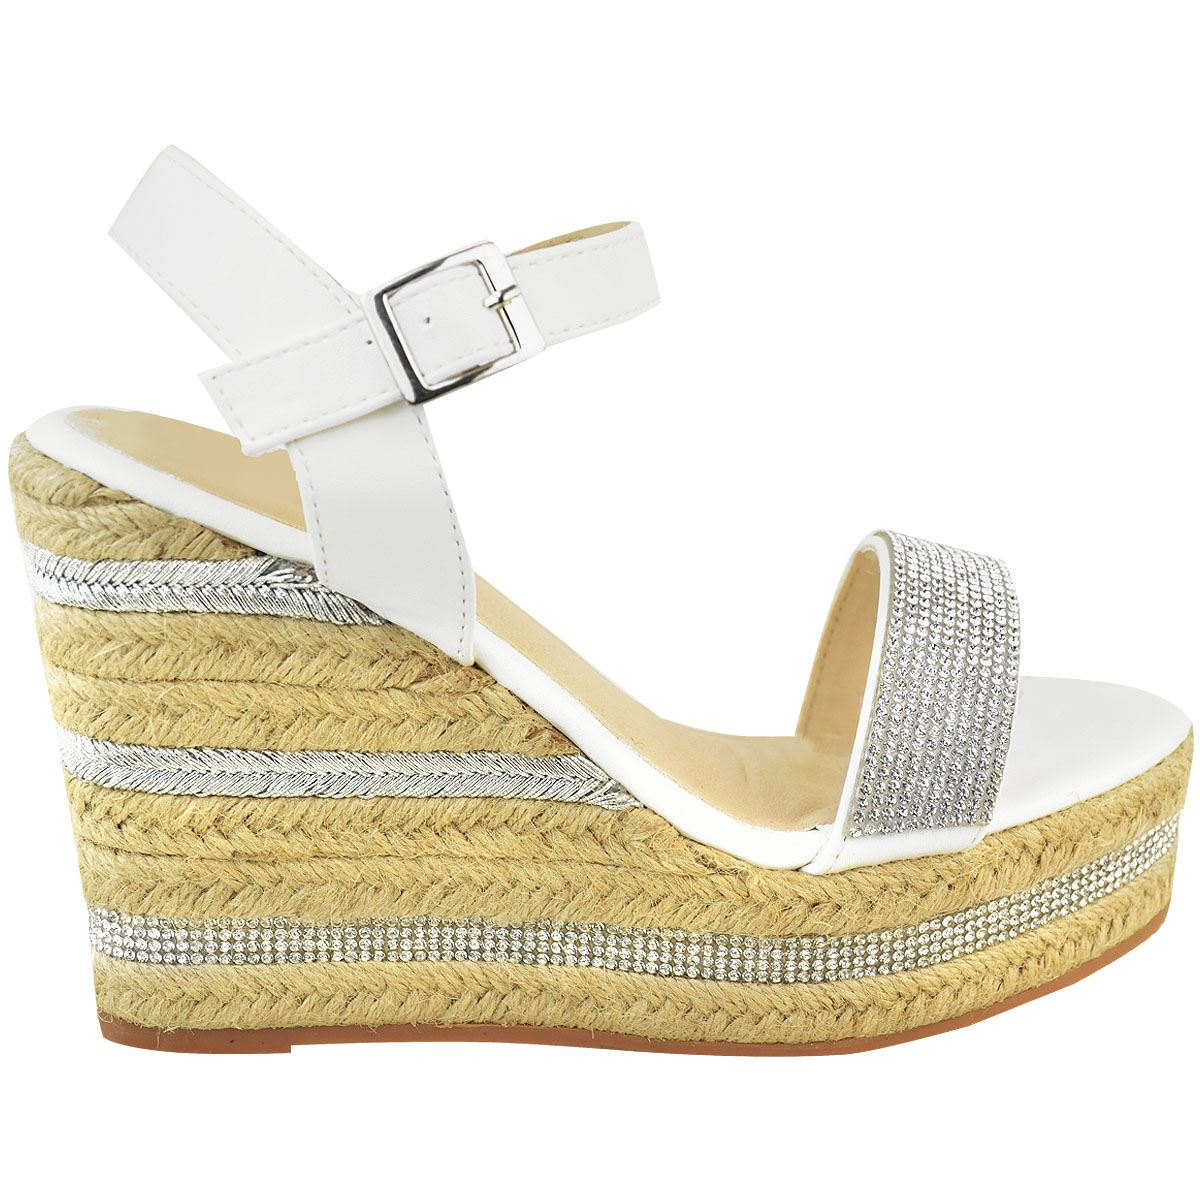 Womens-Ladies-Wedged-High-Heel-Sandals-Raffia-Diamante-Party-Shoes-Summer-Size thumbnail 14